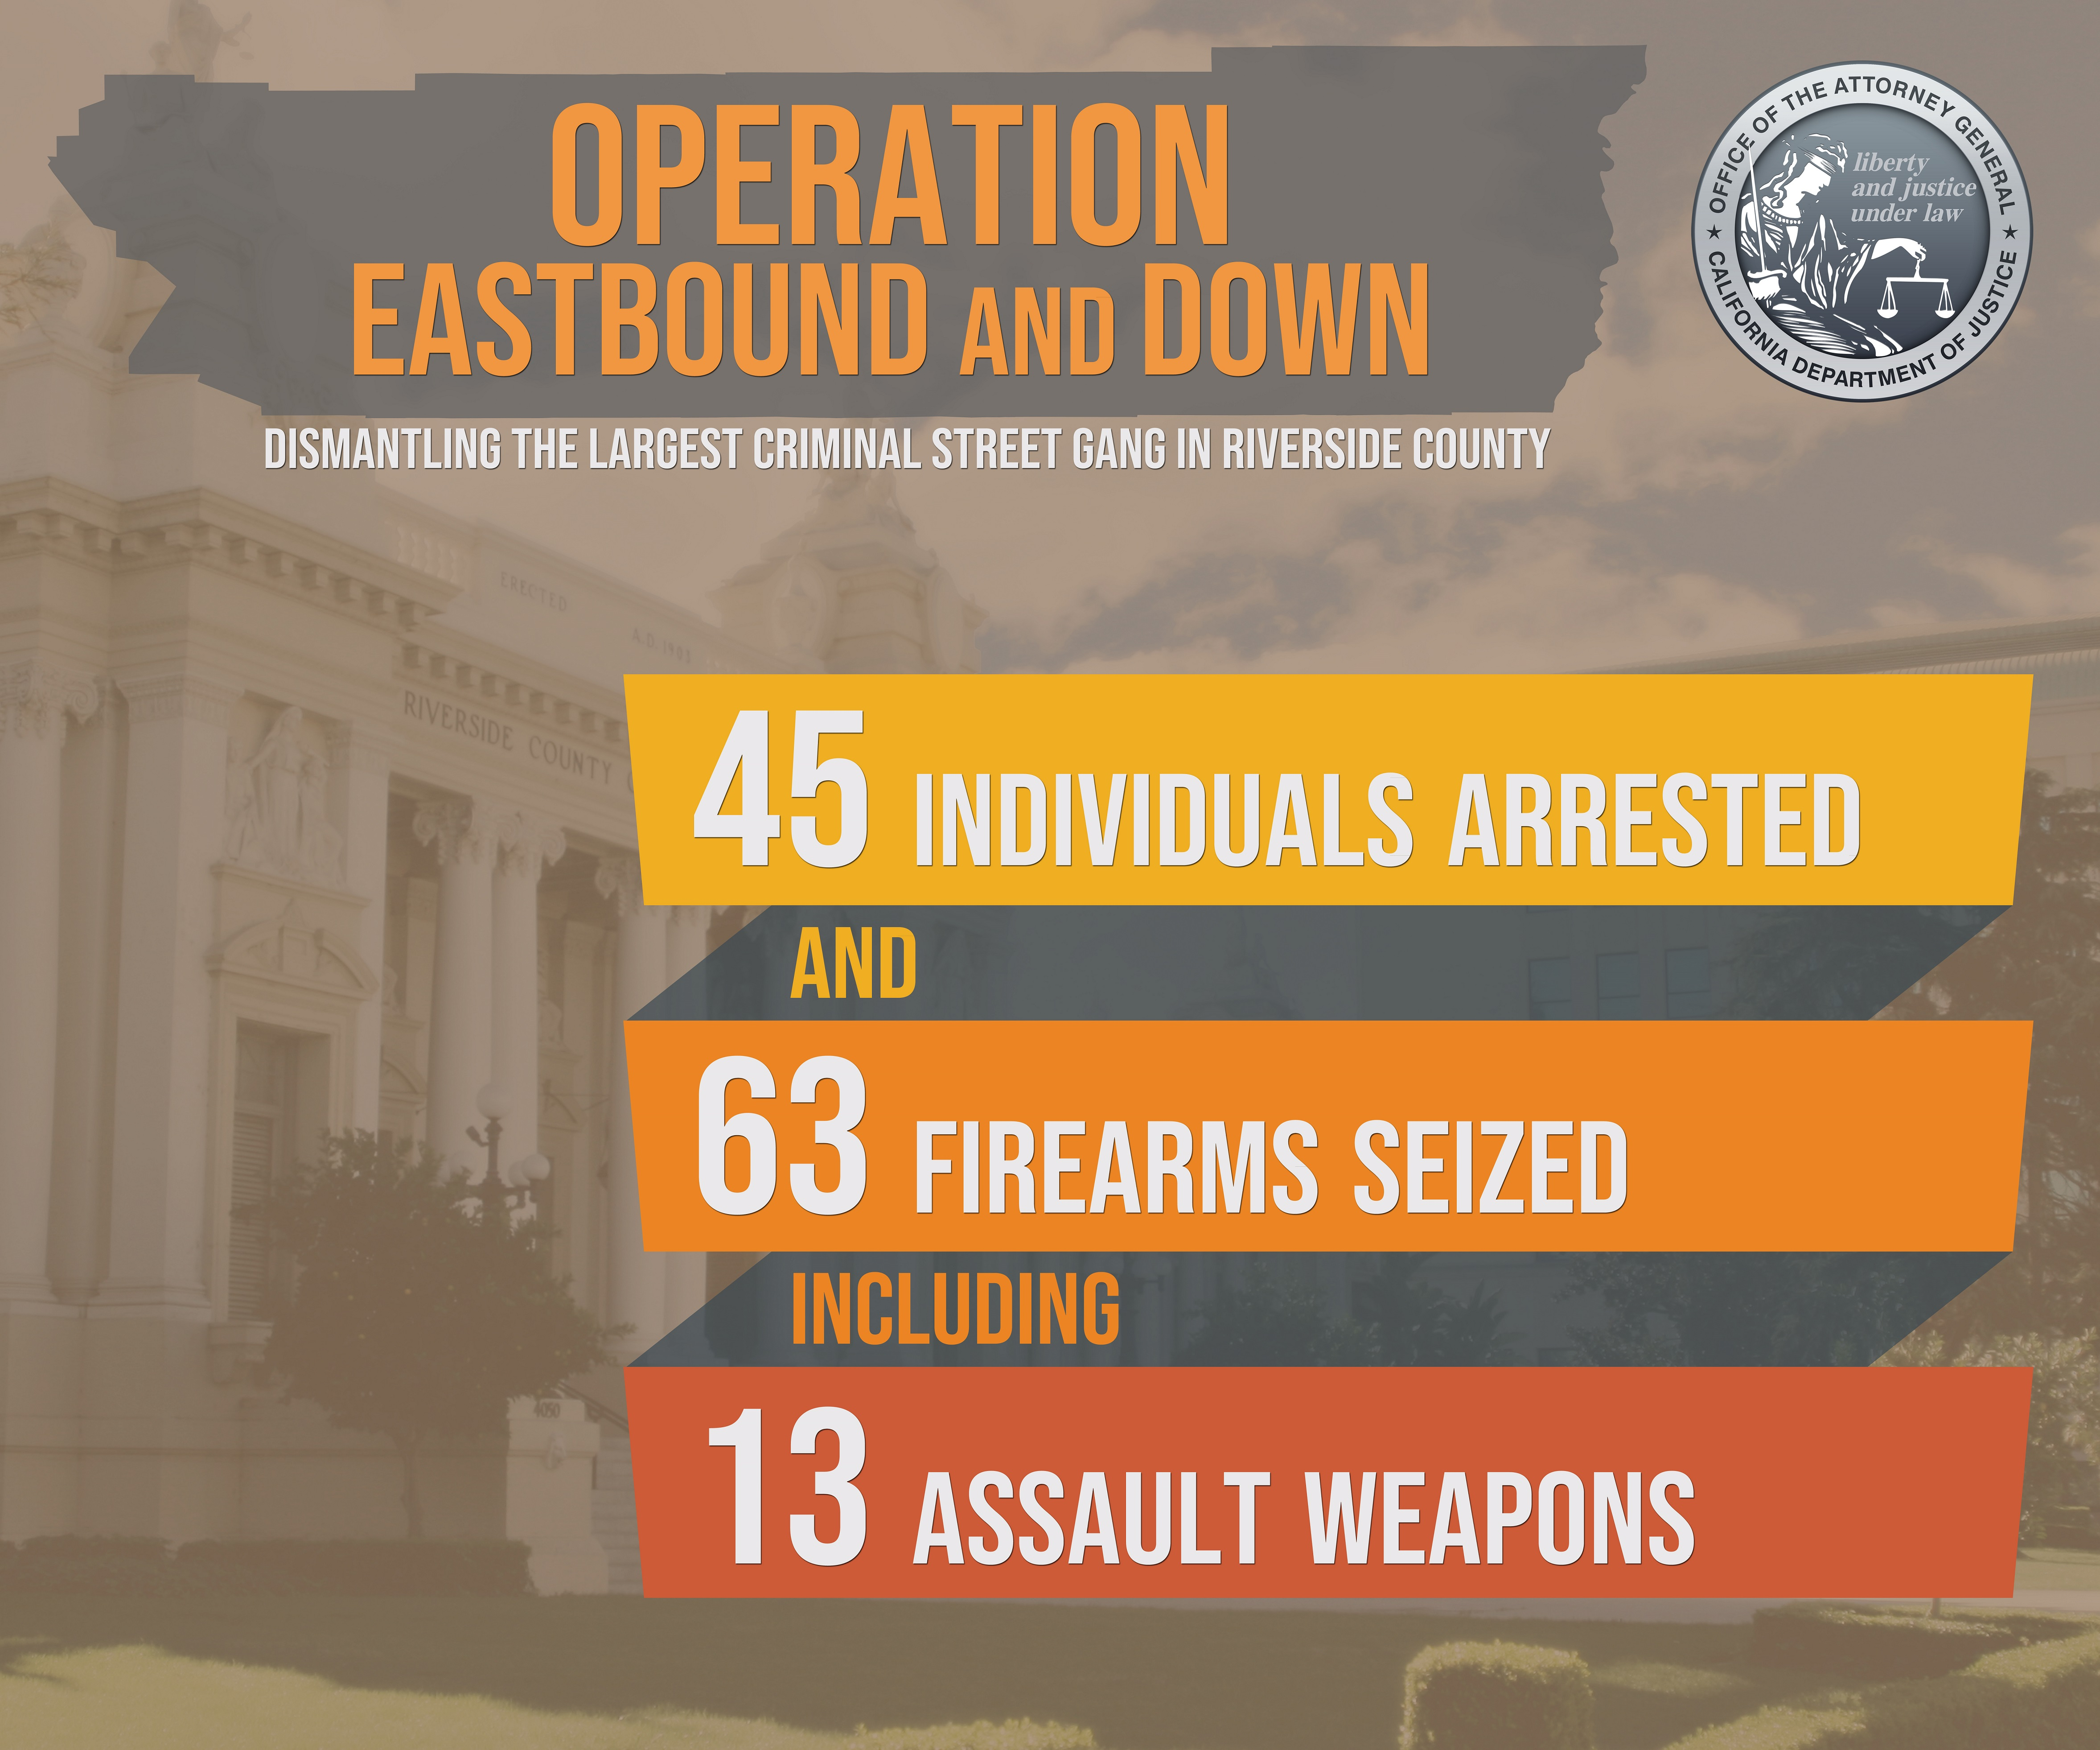 Operation Eastbound and Down poster. 45 arrests. 63 firearms seized. 13 assault weapons